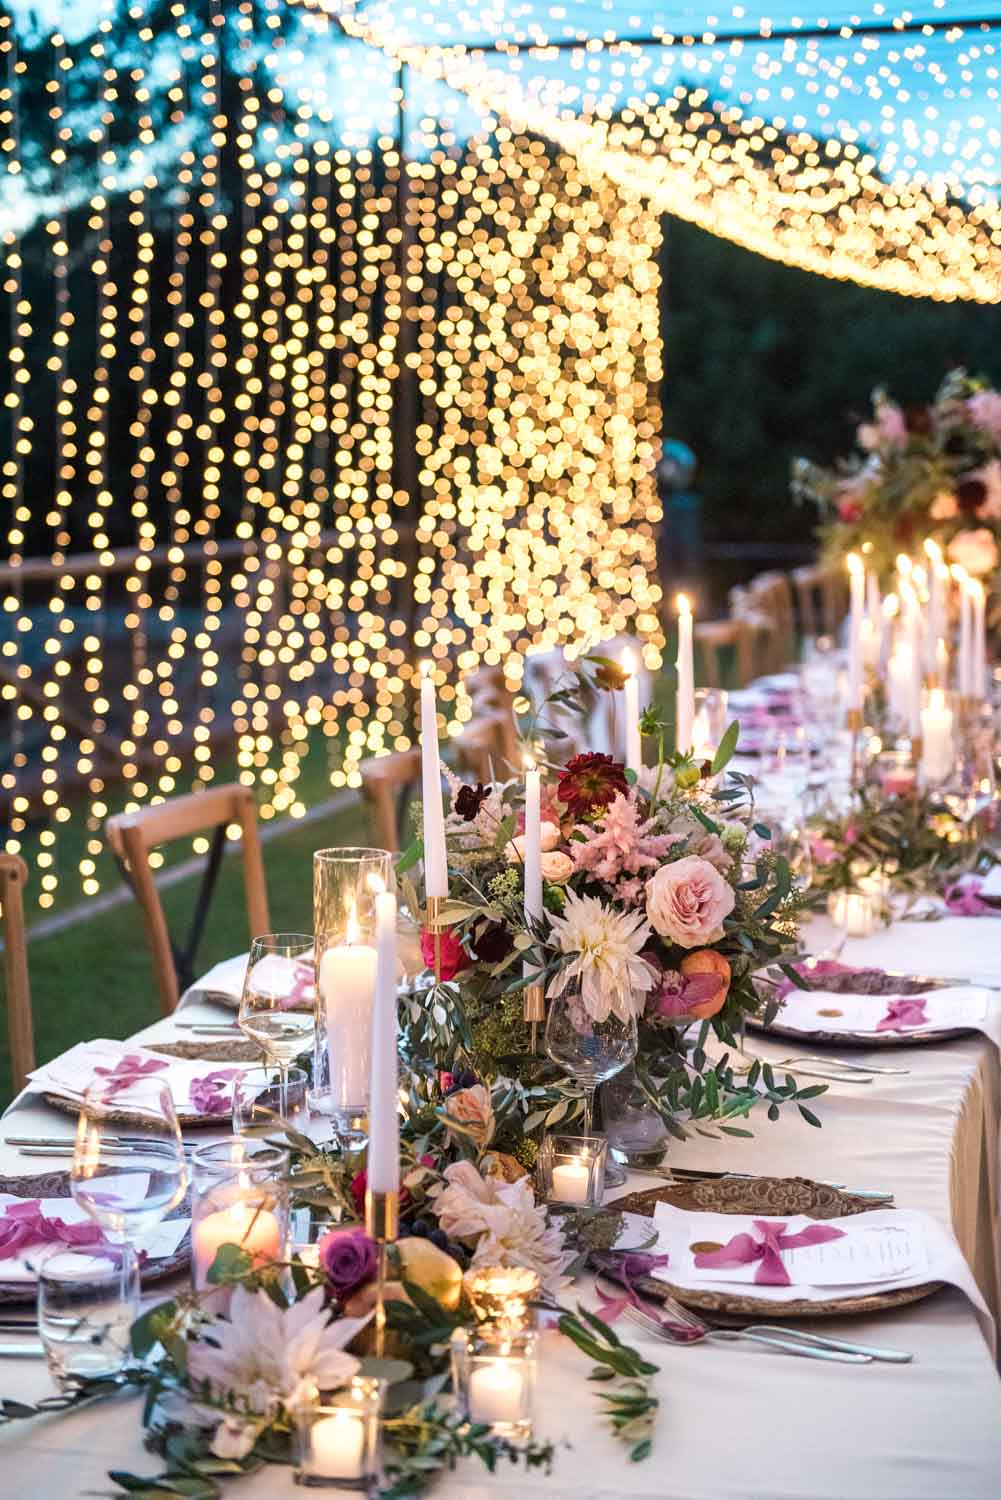 An amazing fairytale set-up of an Italian wedding diner, styled by Il Matrimonio Italiano, photographed by Wit Photography